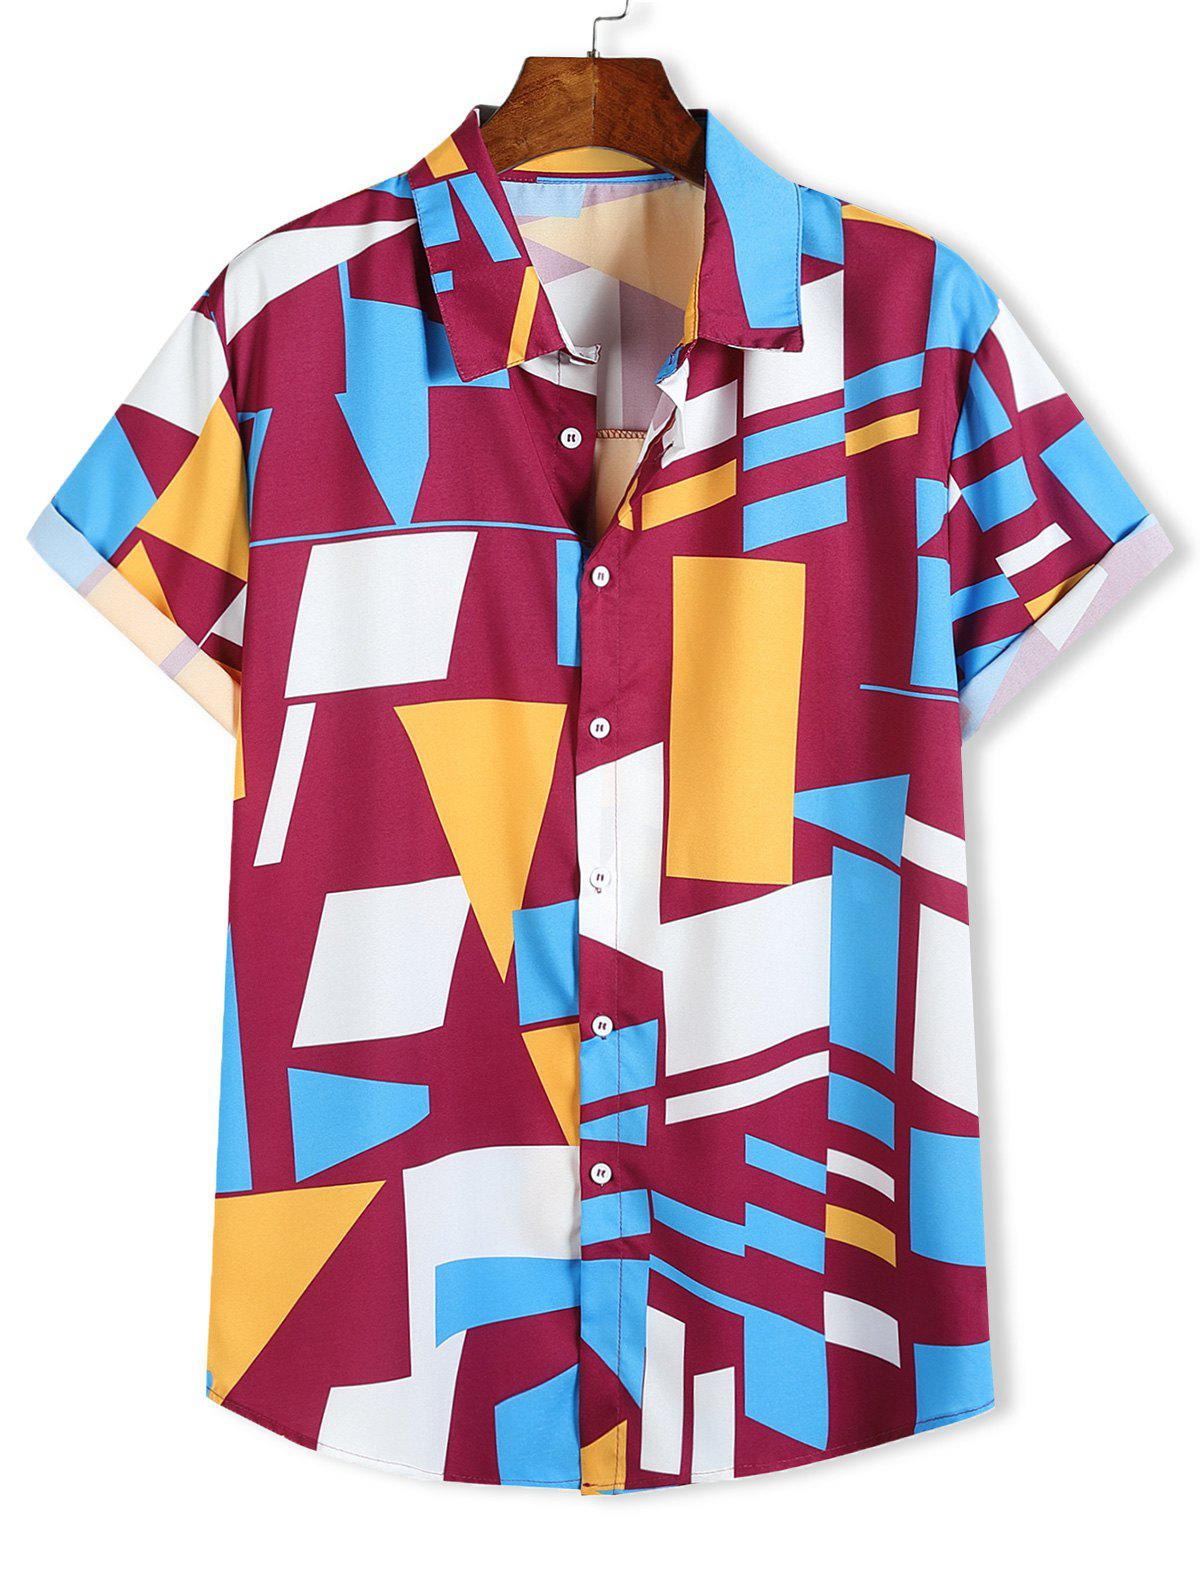 Shops Color Blocking Geometric Print Short Sleeve Shirt